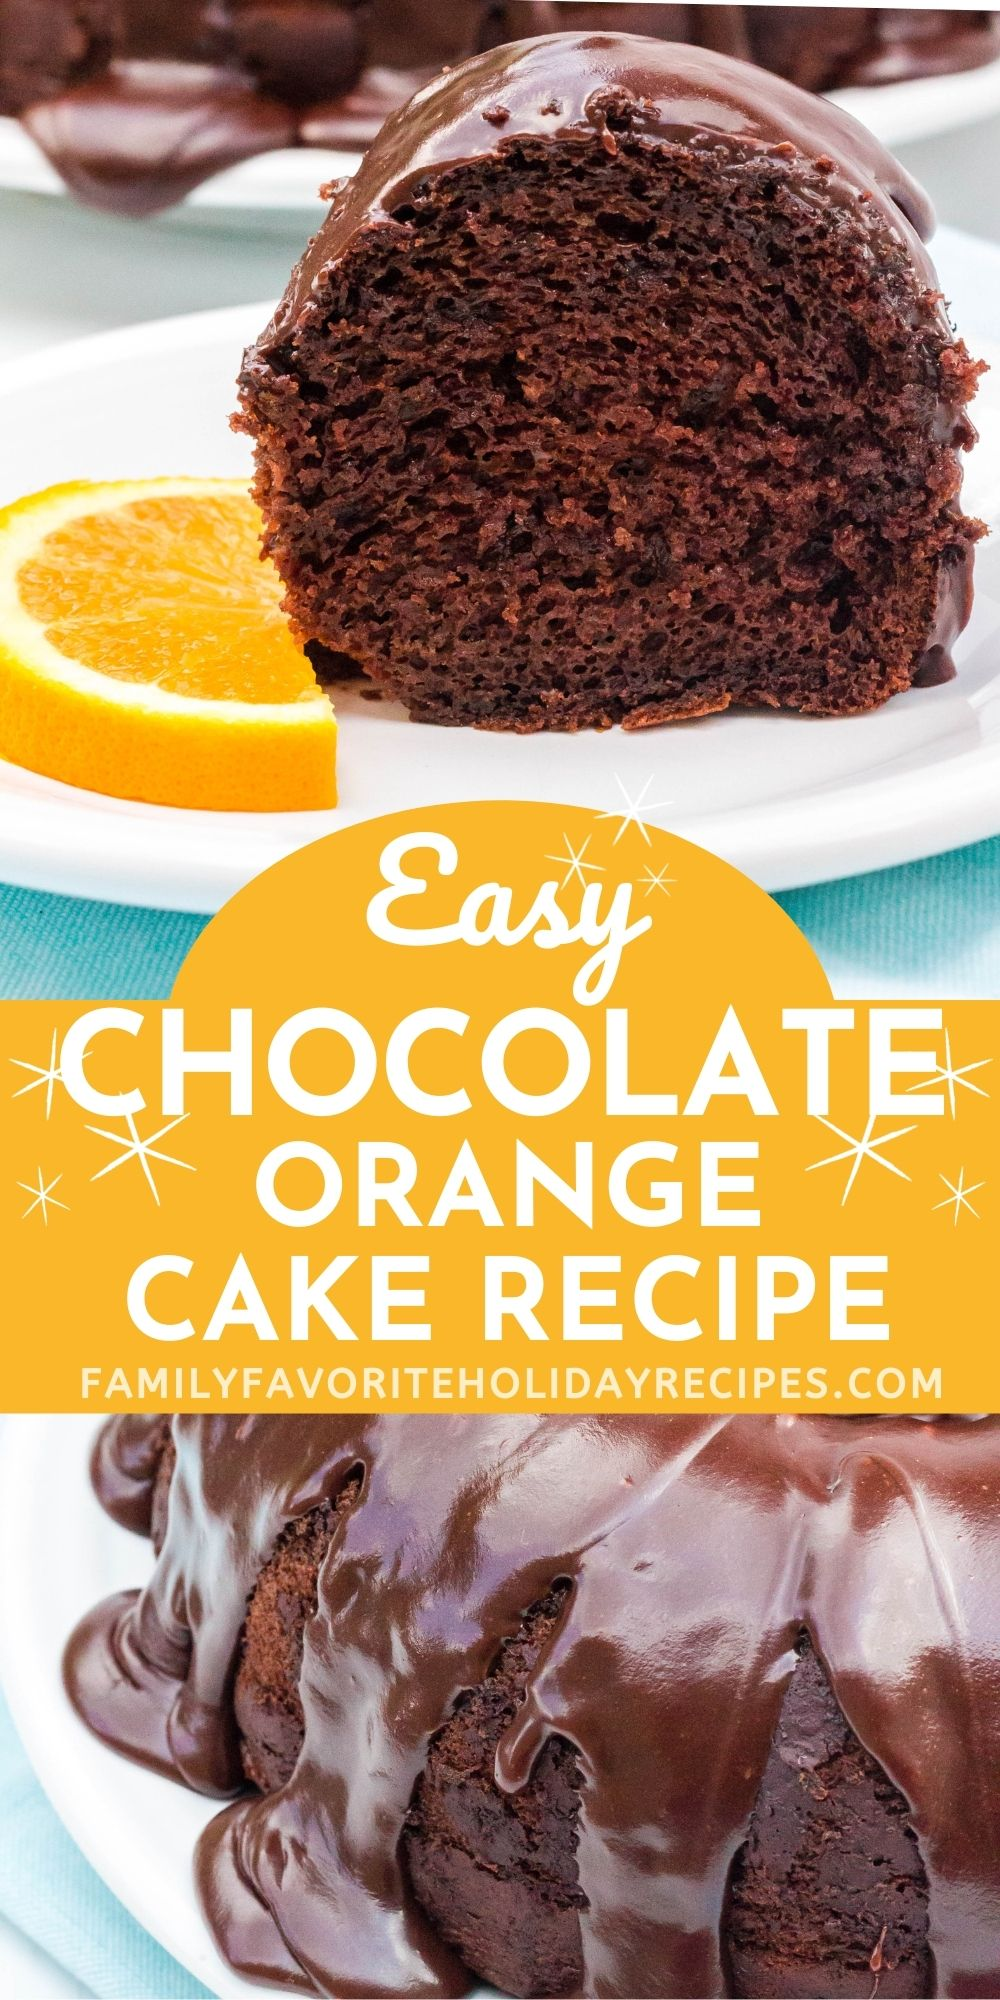 collage image featuring two photos of the chocolate orange bundt cake; one photo is a slice of cake and the other shows the frosting drizzled over the cake